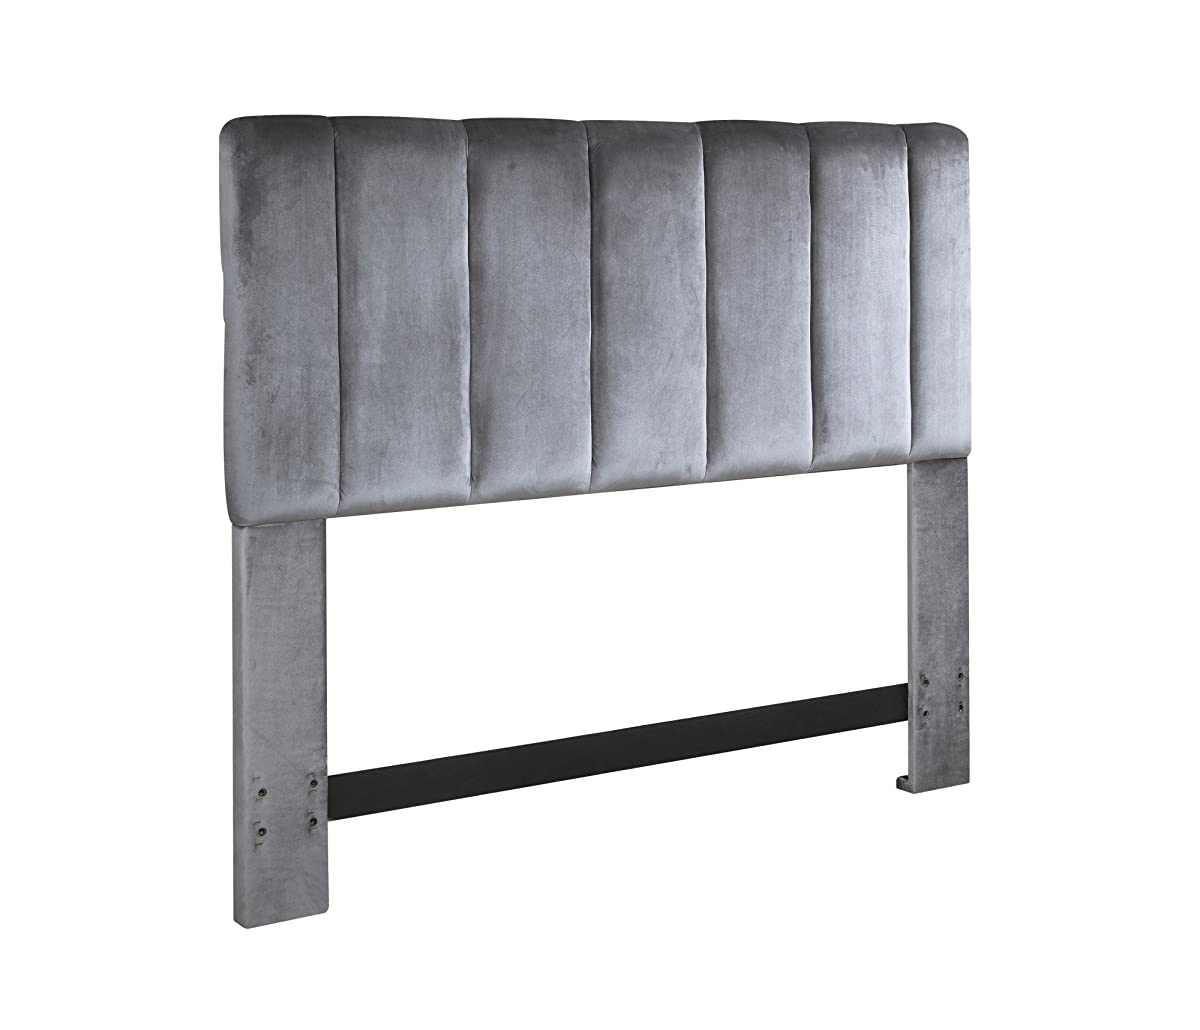 Iconic Home FHB9059-AN Uriella Headboard Velvet Upholstered Vertical Striped Modern Transitional, Full/Queen, Grey